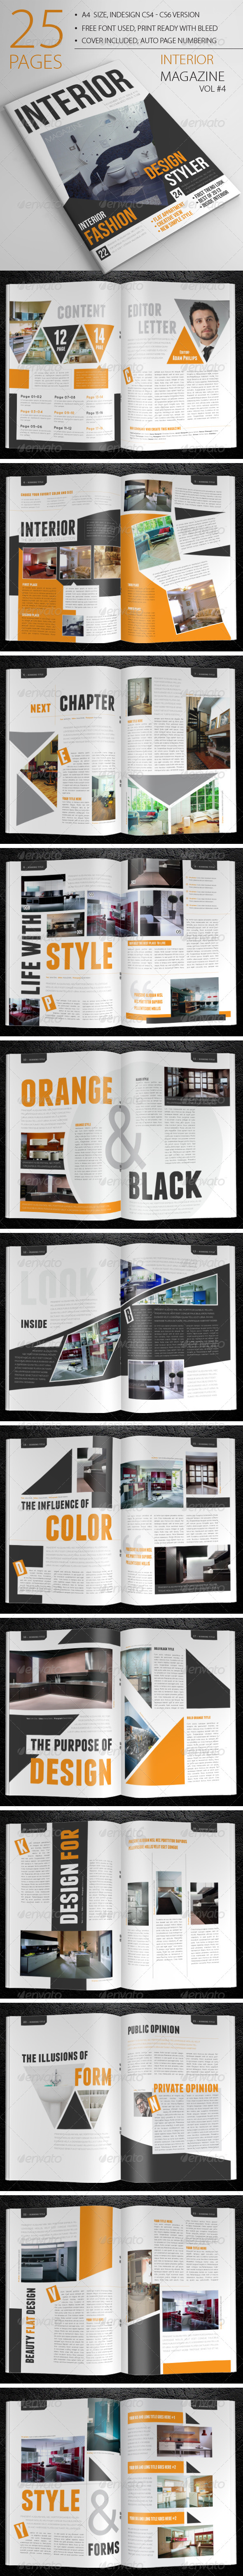 25 Pages Interior Magazine Vol4 - Magazines Print Templates